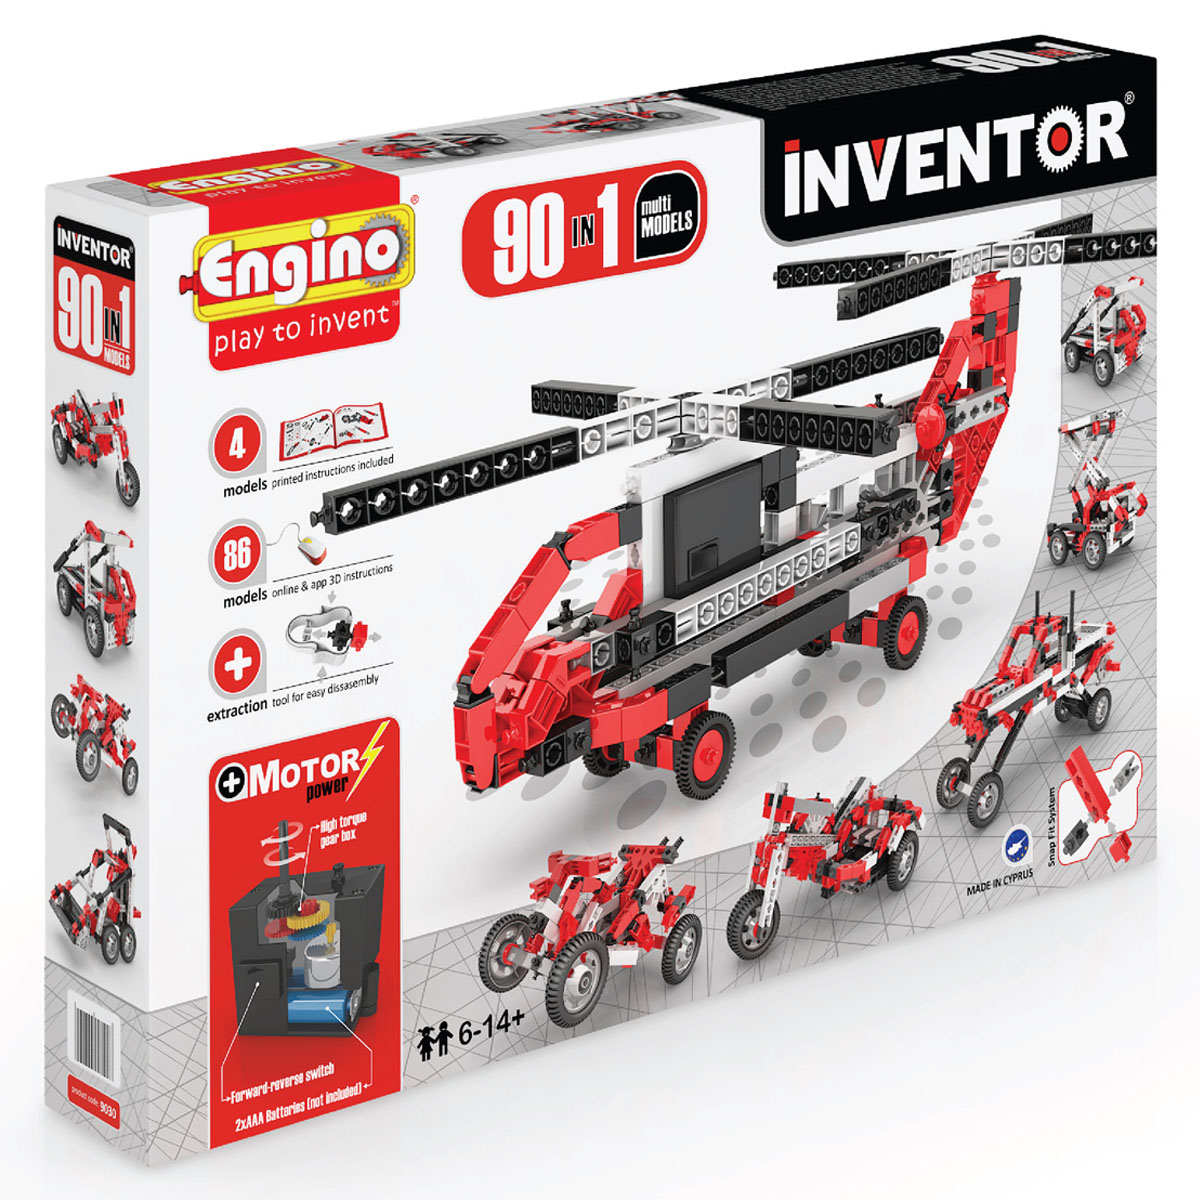 INVENTOR 90in1 MODELS MOTORIZED